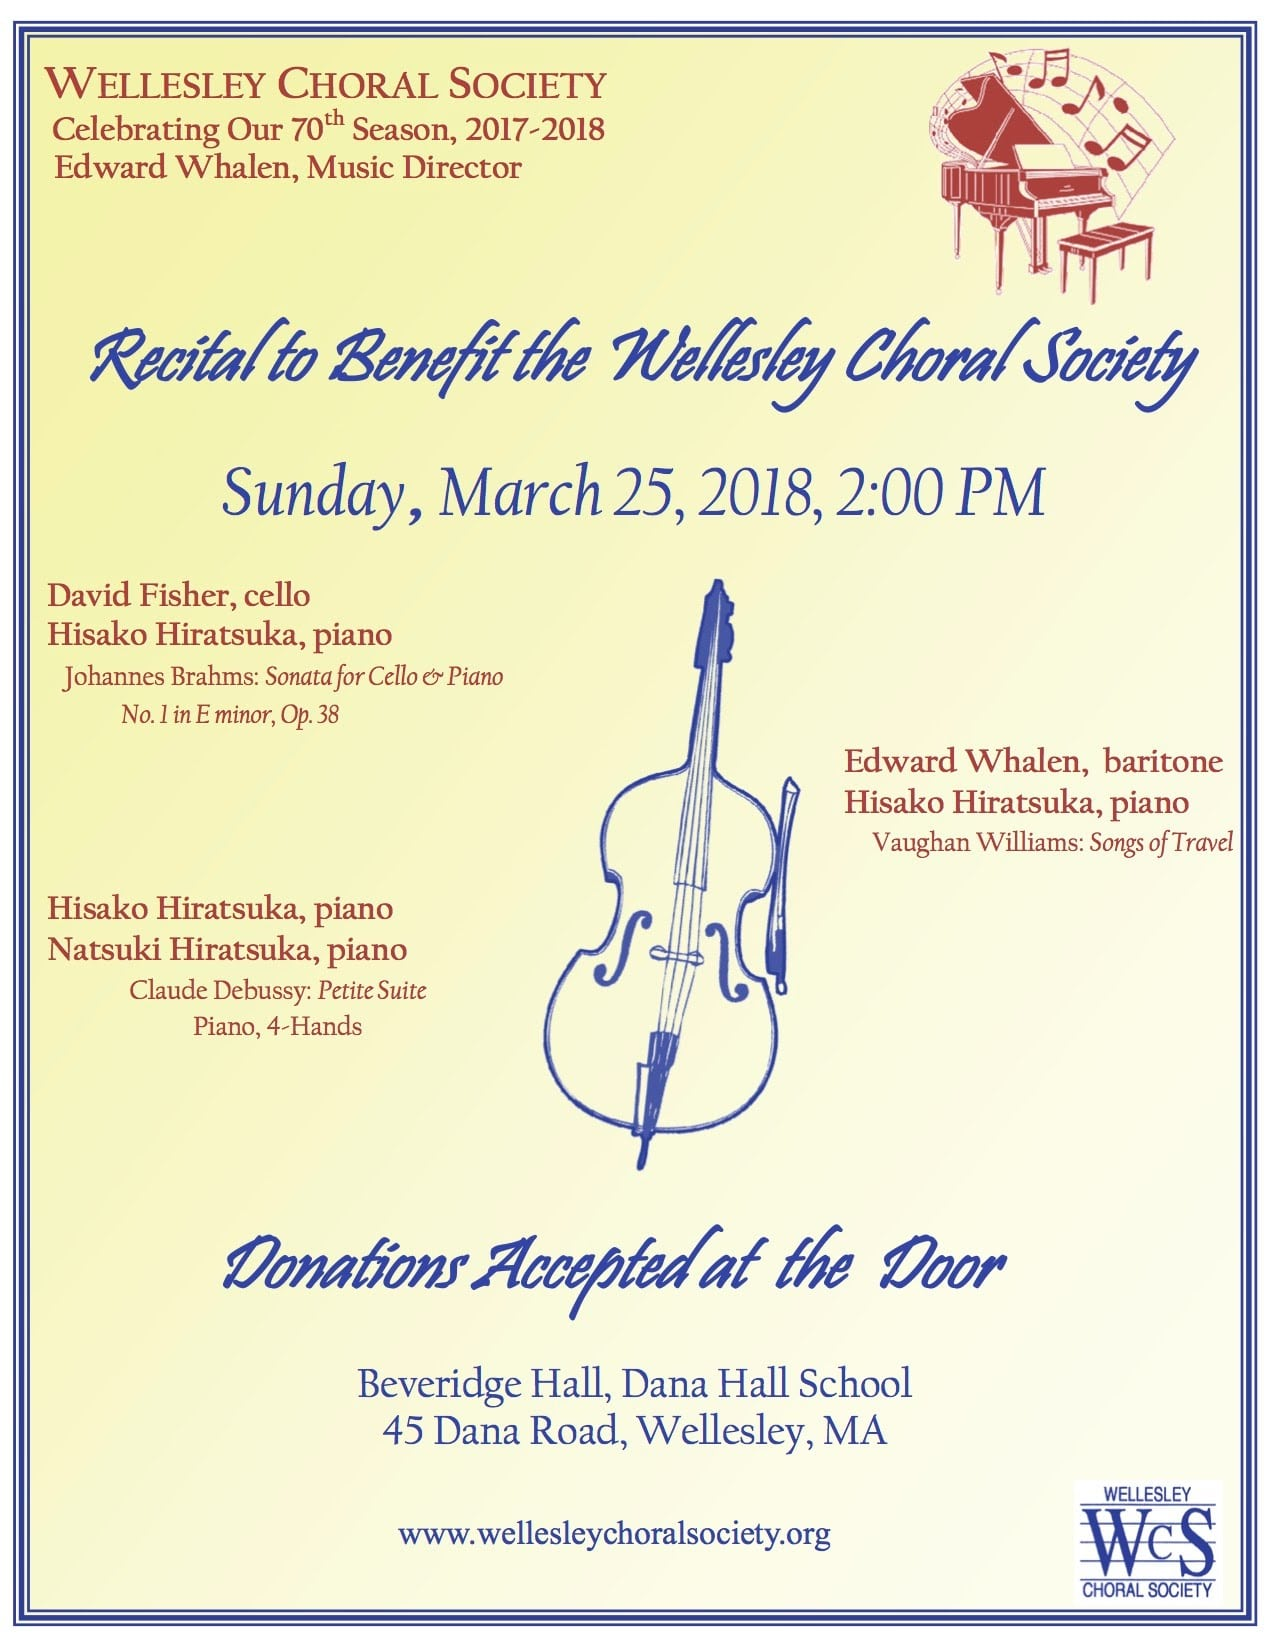 Wellesley Choral Society concert